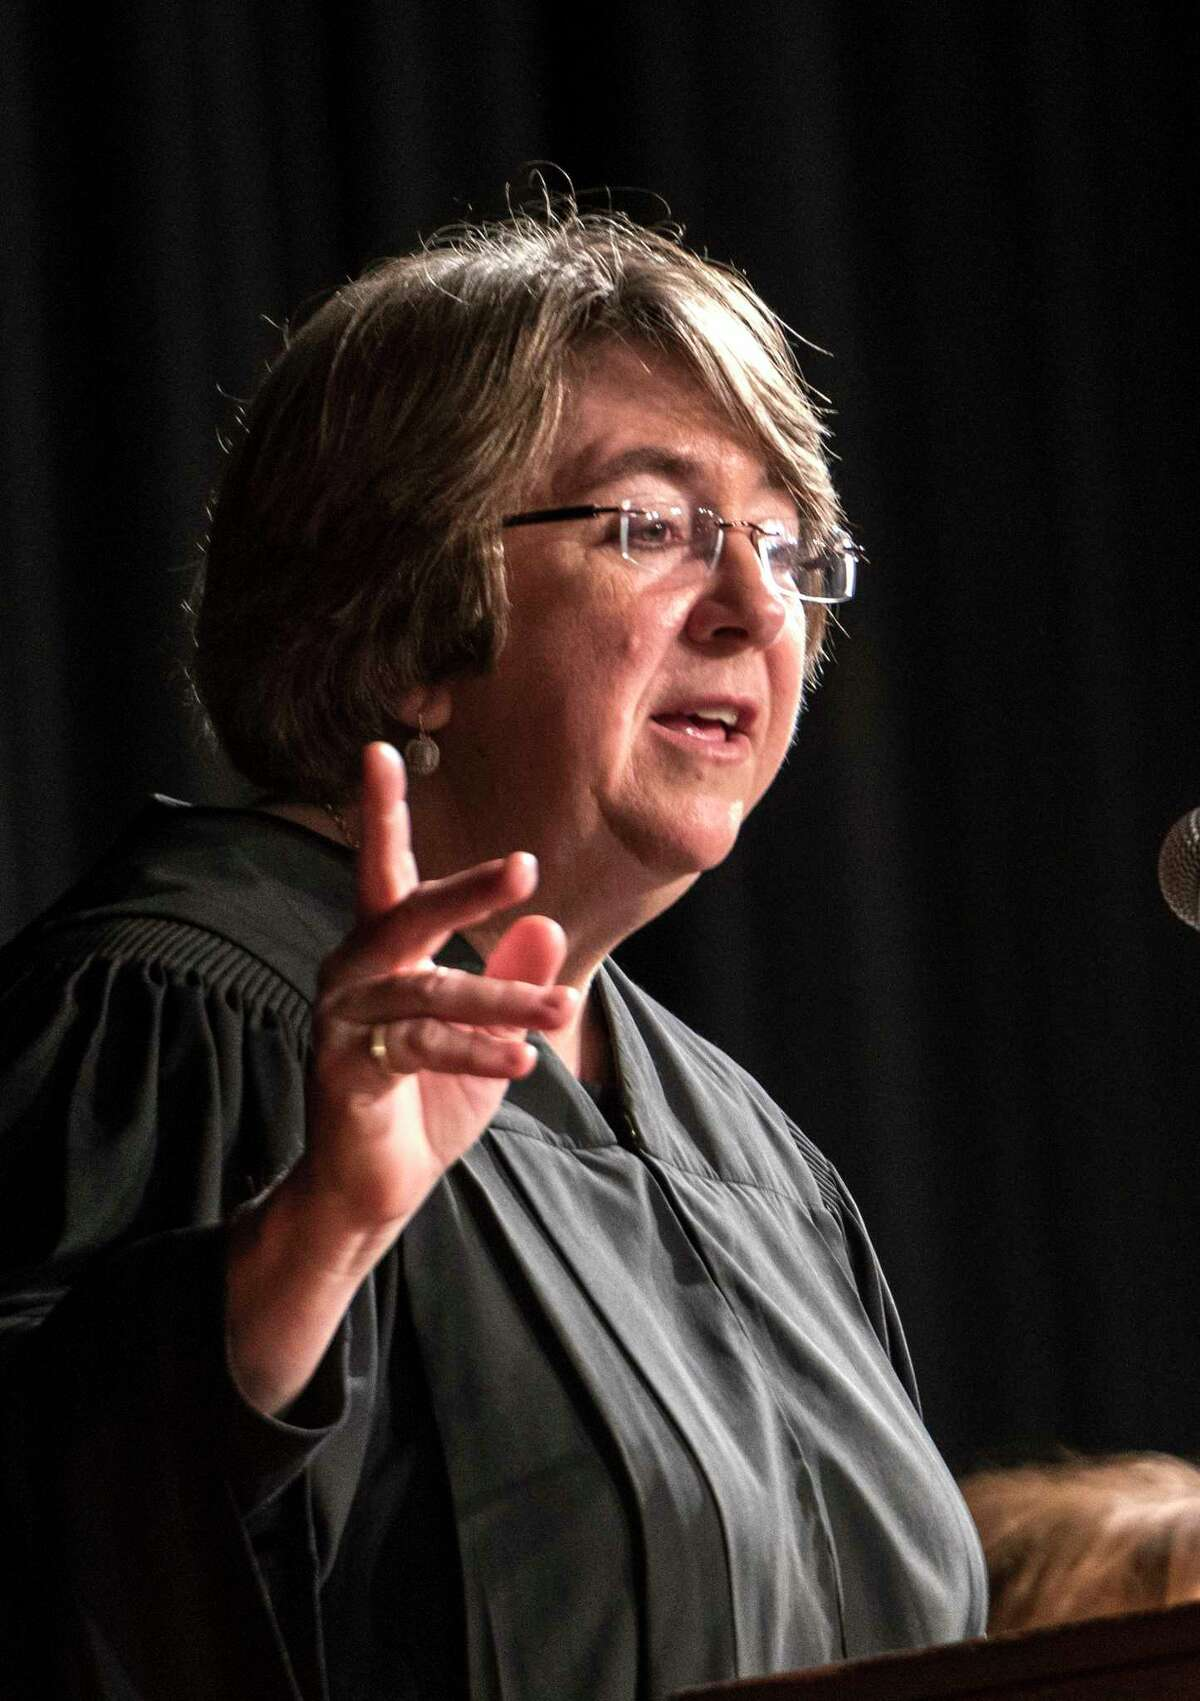 Hon. Elizabeth A. Garry, Presiding Justice New York State Supreme Court, Appellate Division, Third Department welcomes the 747 new attorneys of the New York State Bar at a ceremony held at the Convention Center at the Empire State Plaza Thursday Jan 17, 2018 in Albany, N.Y. (Skip Dickstein/ Times Union)